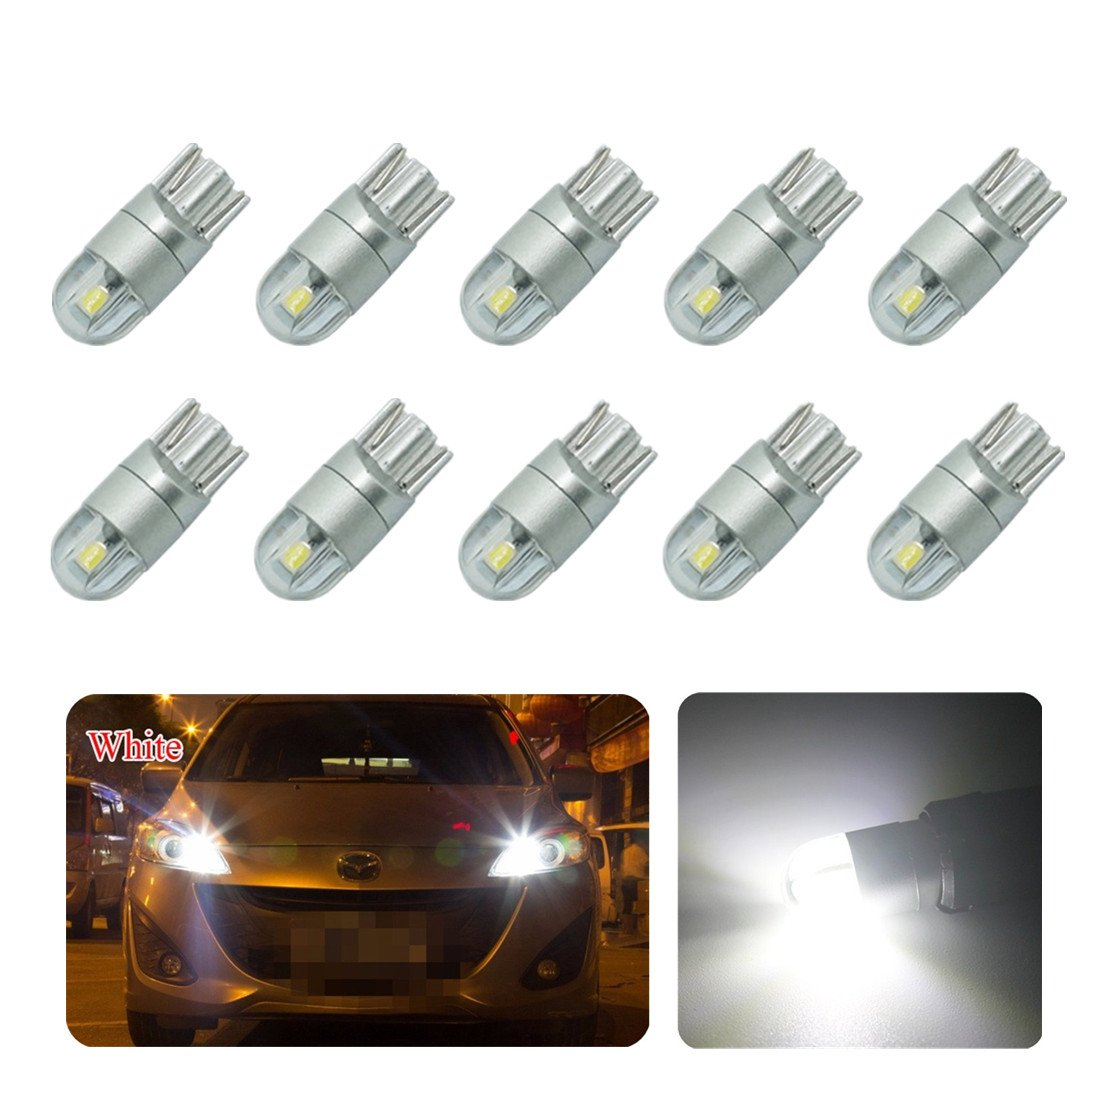 FEZZ Car LED Light Bulbs T10 W5W 194 168 3030 2SMD Canbus Error Free for Side marker Indicator License plate Light White (Pack of 10) FZ0028